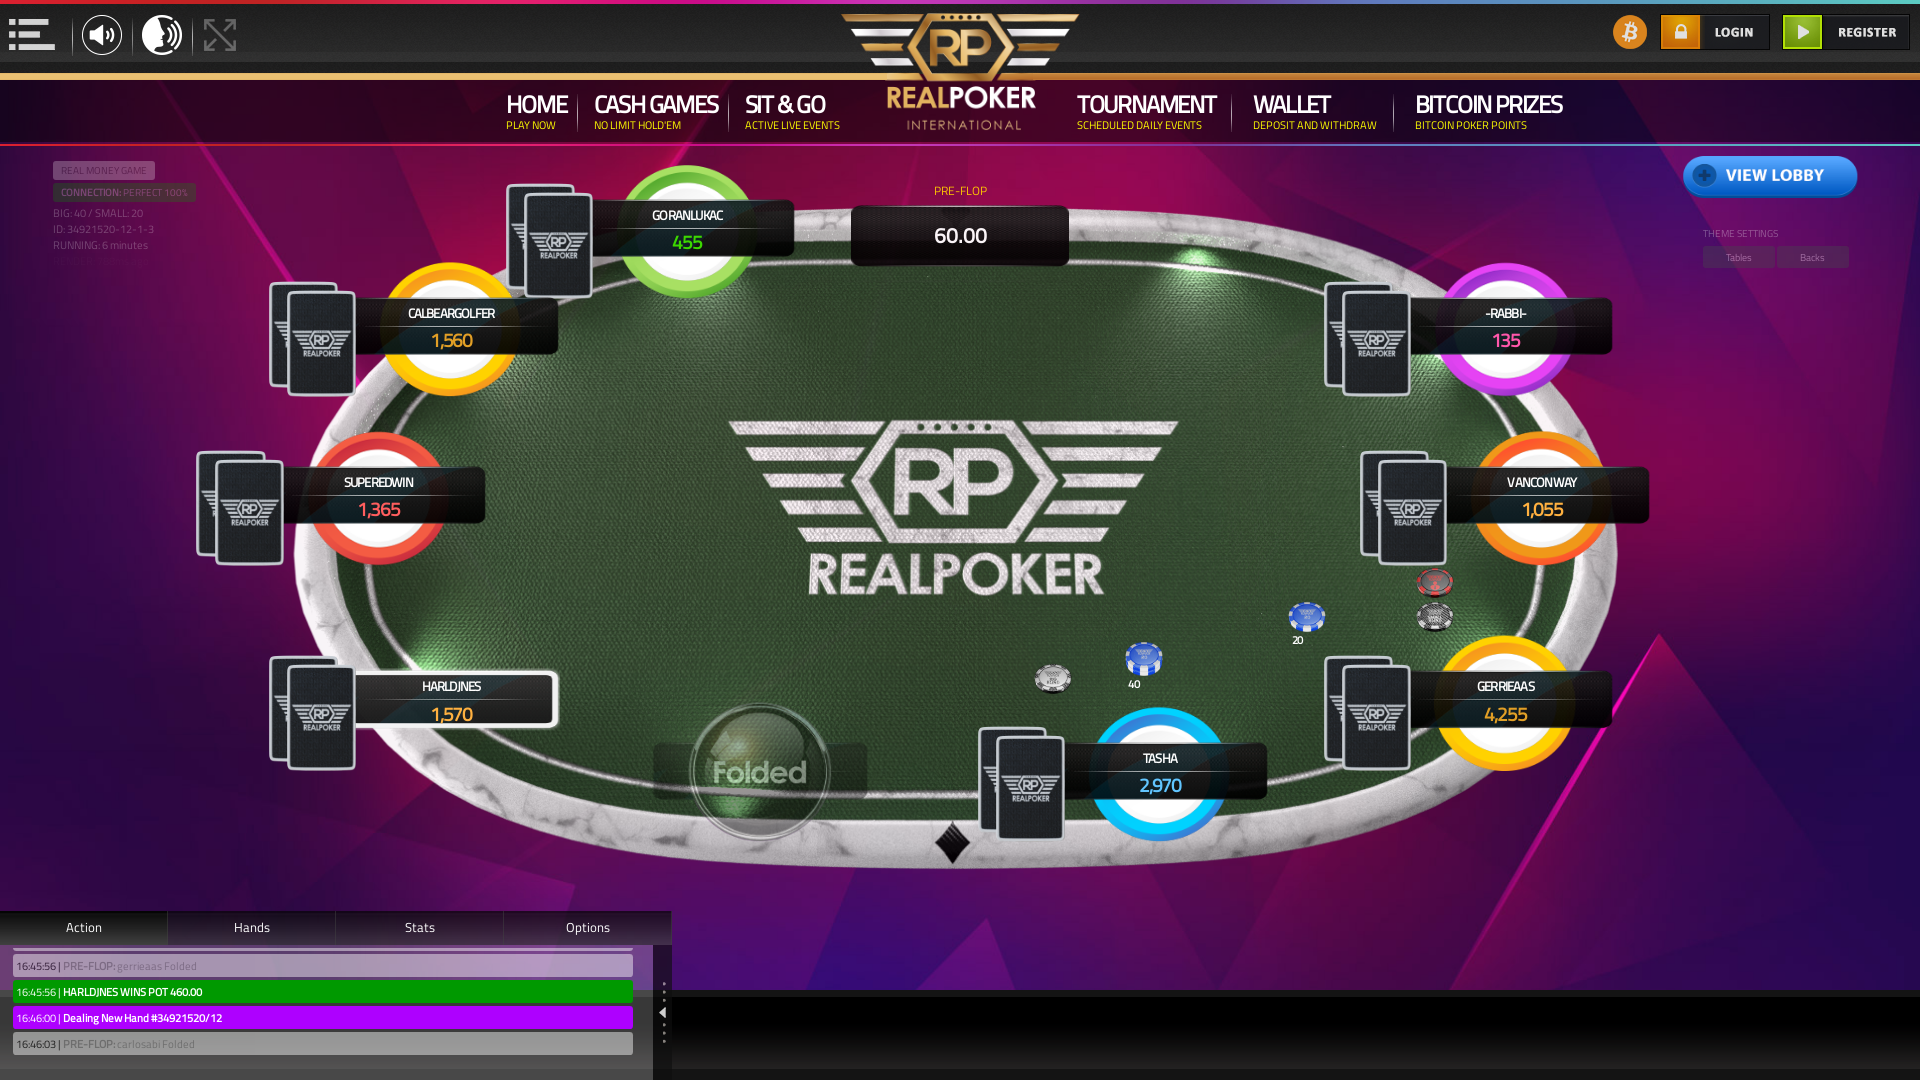 Real poker 10 player table in the 6th minute